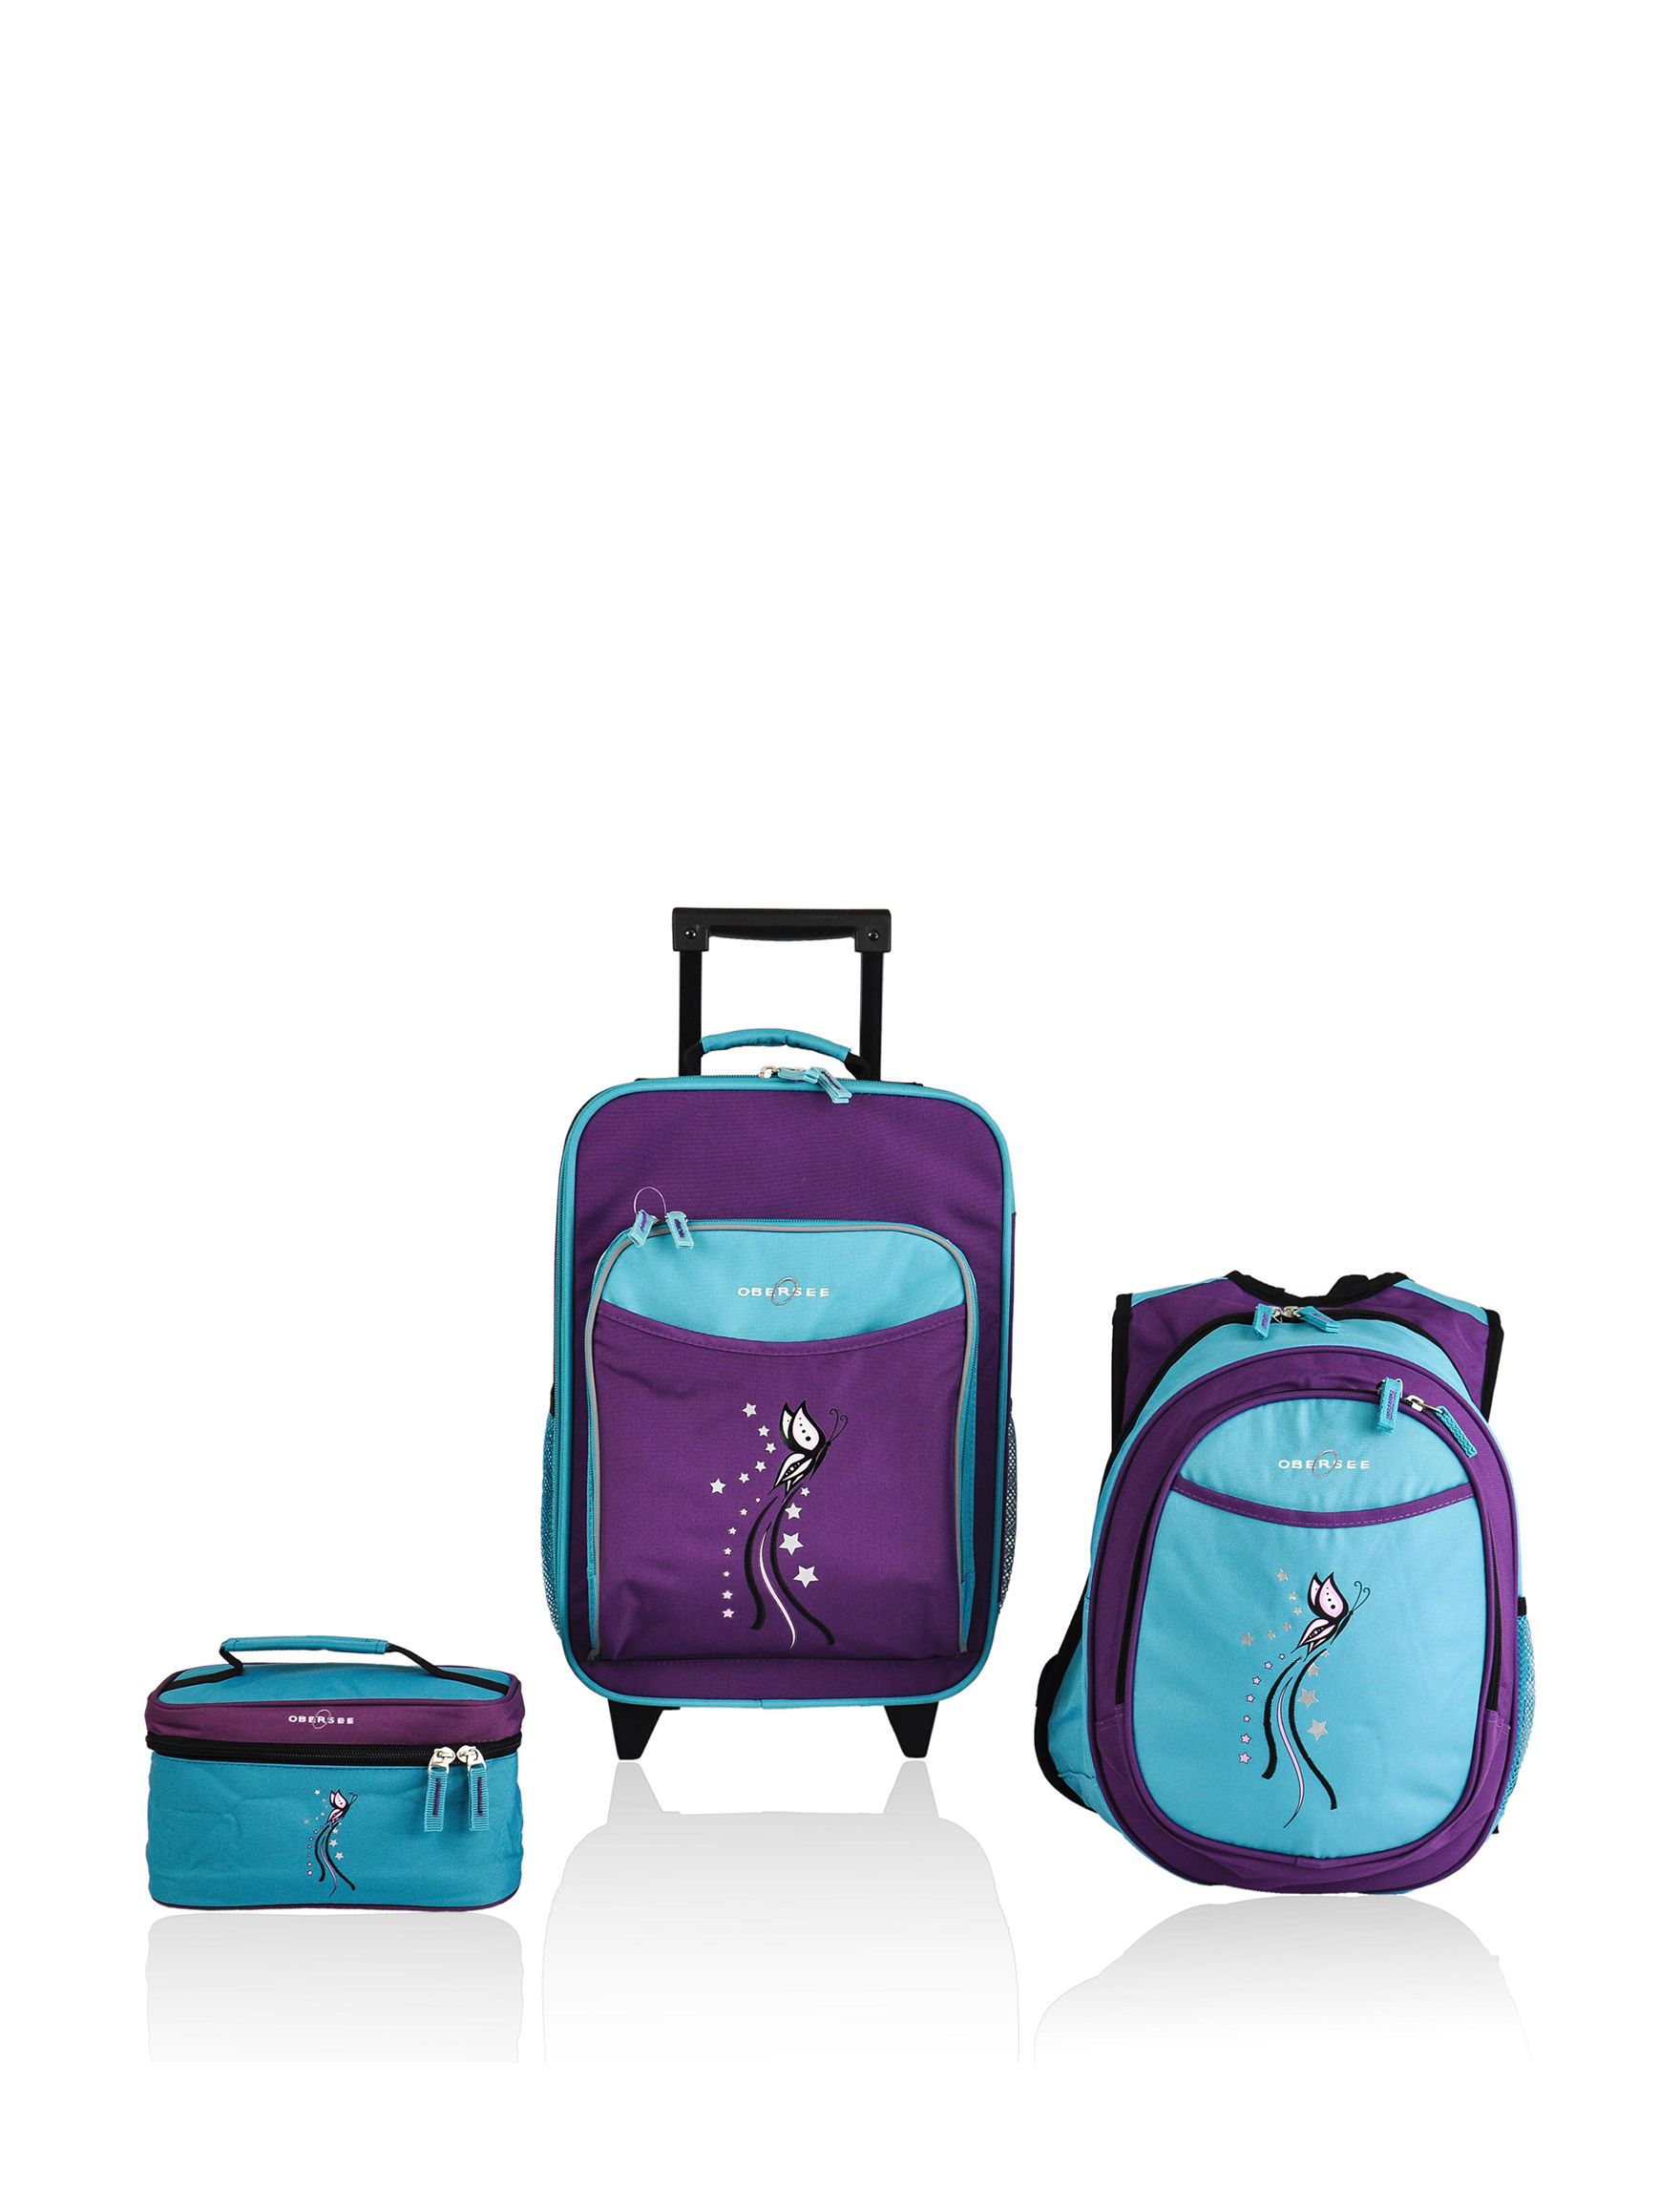 Obersee Blue / Purple Luggage Sets